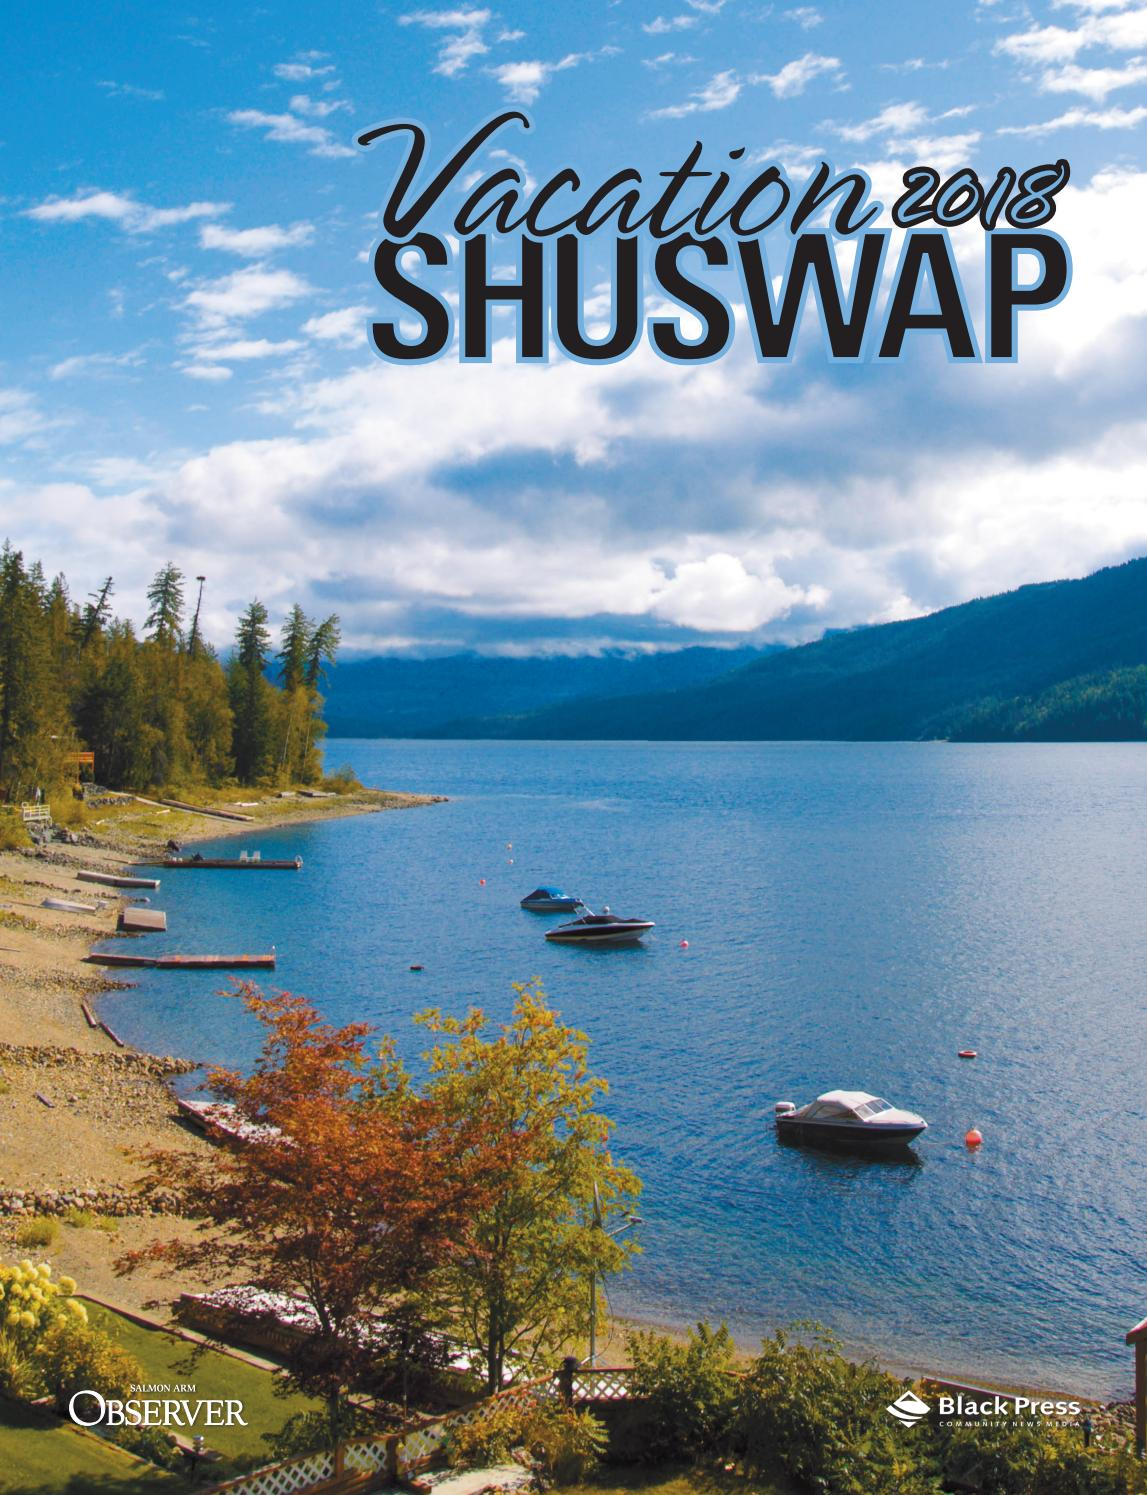 Tourism Guide Vacation Shuswap 2018 By Black Press Media